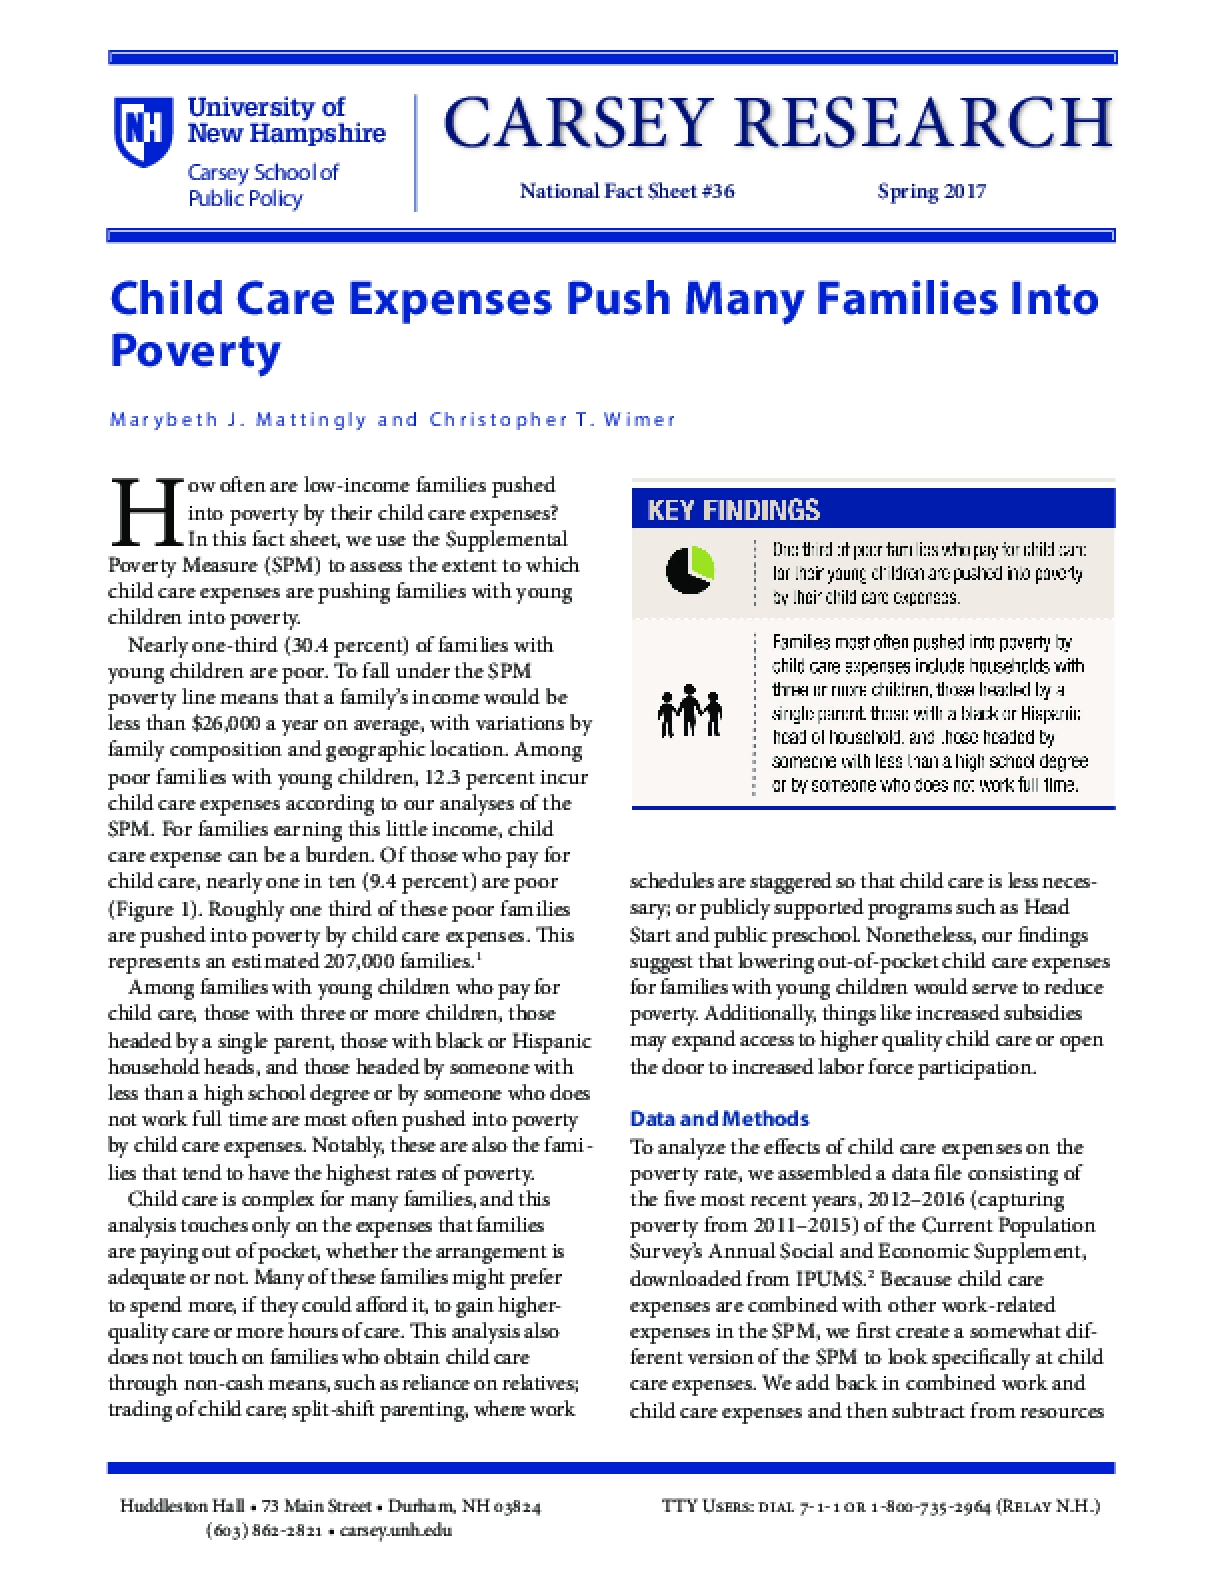 Child Care Expenses Push Many Families Into Poverty